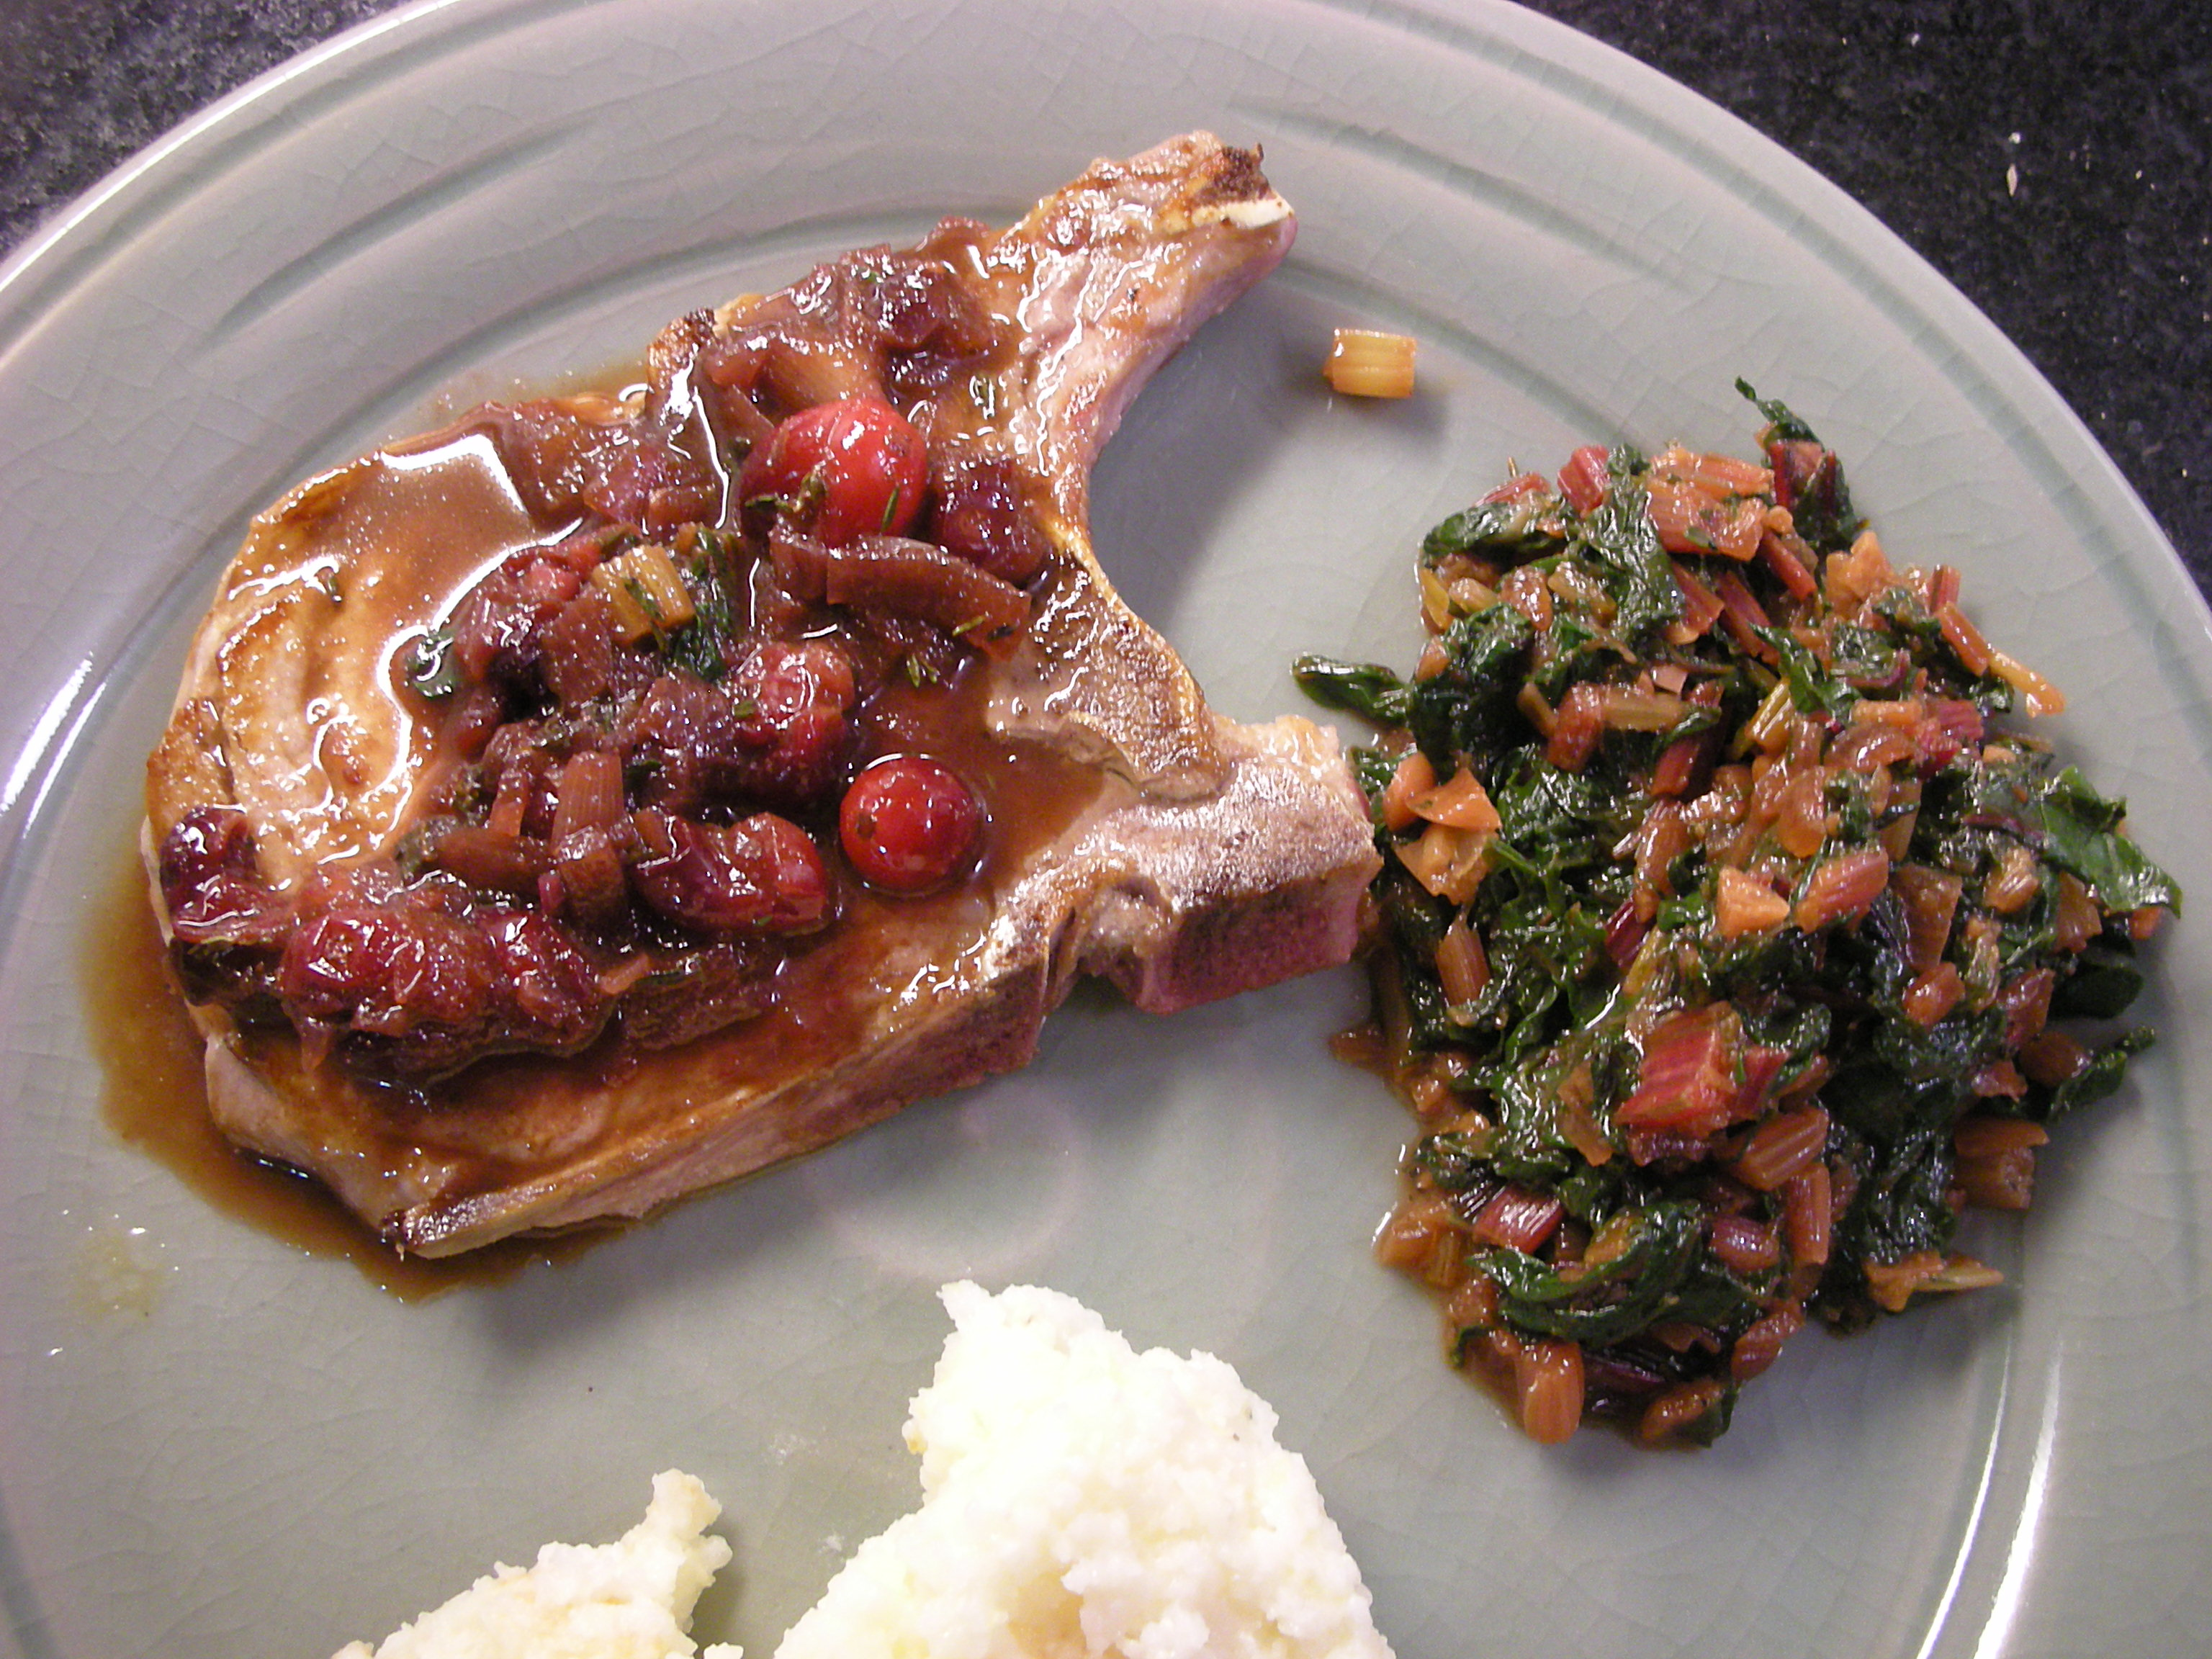 Pan Roasted Pork Chops with Cranberries and Red Swiss Chard - CookingCoOp.com